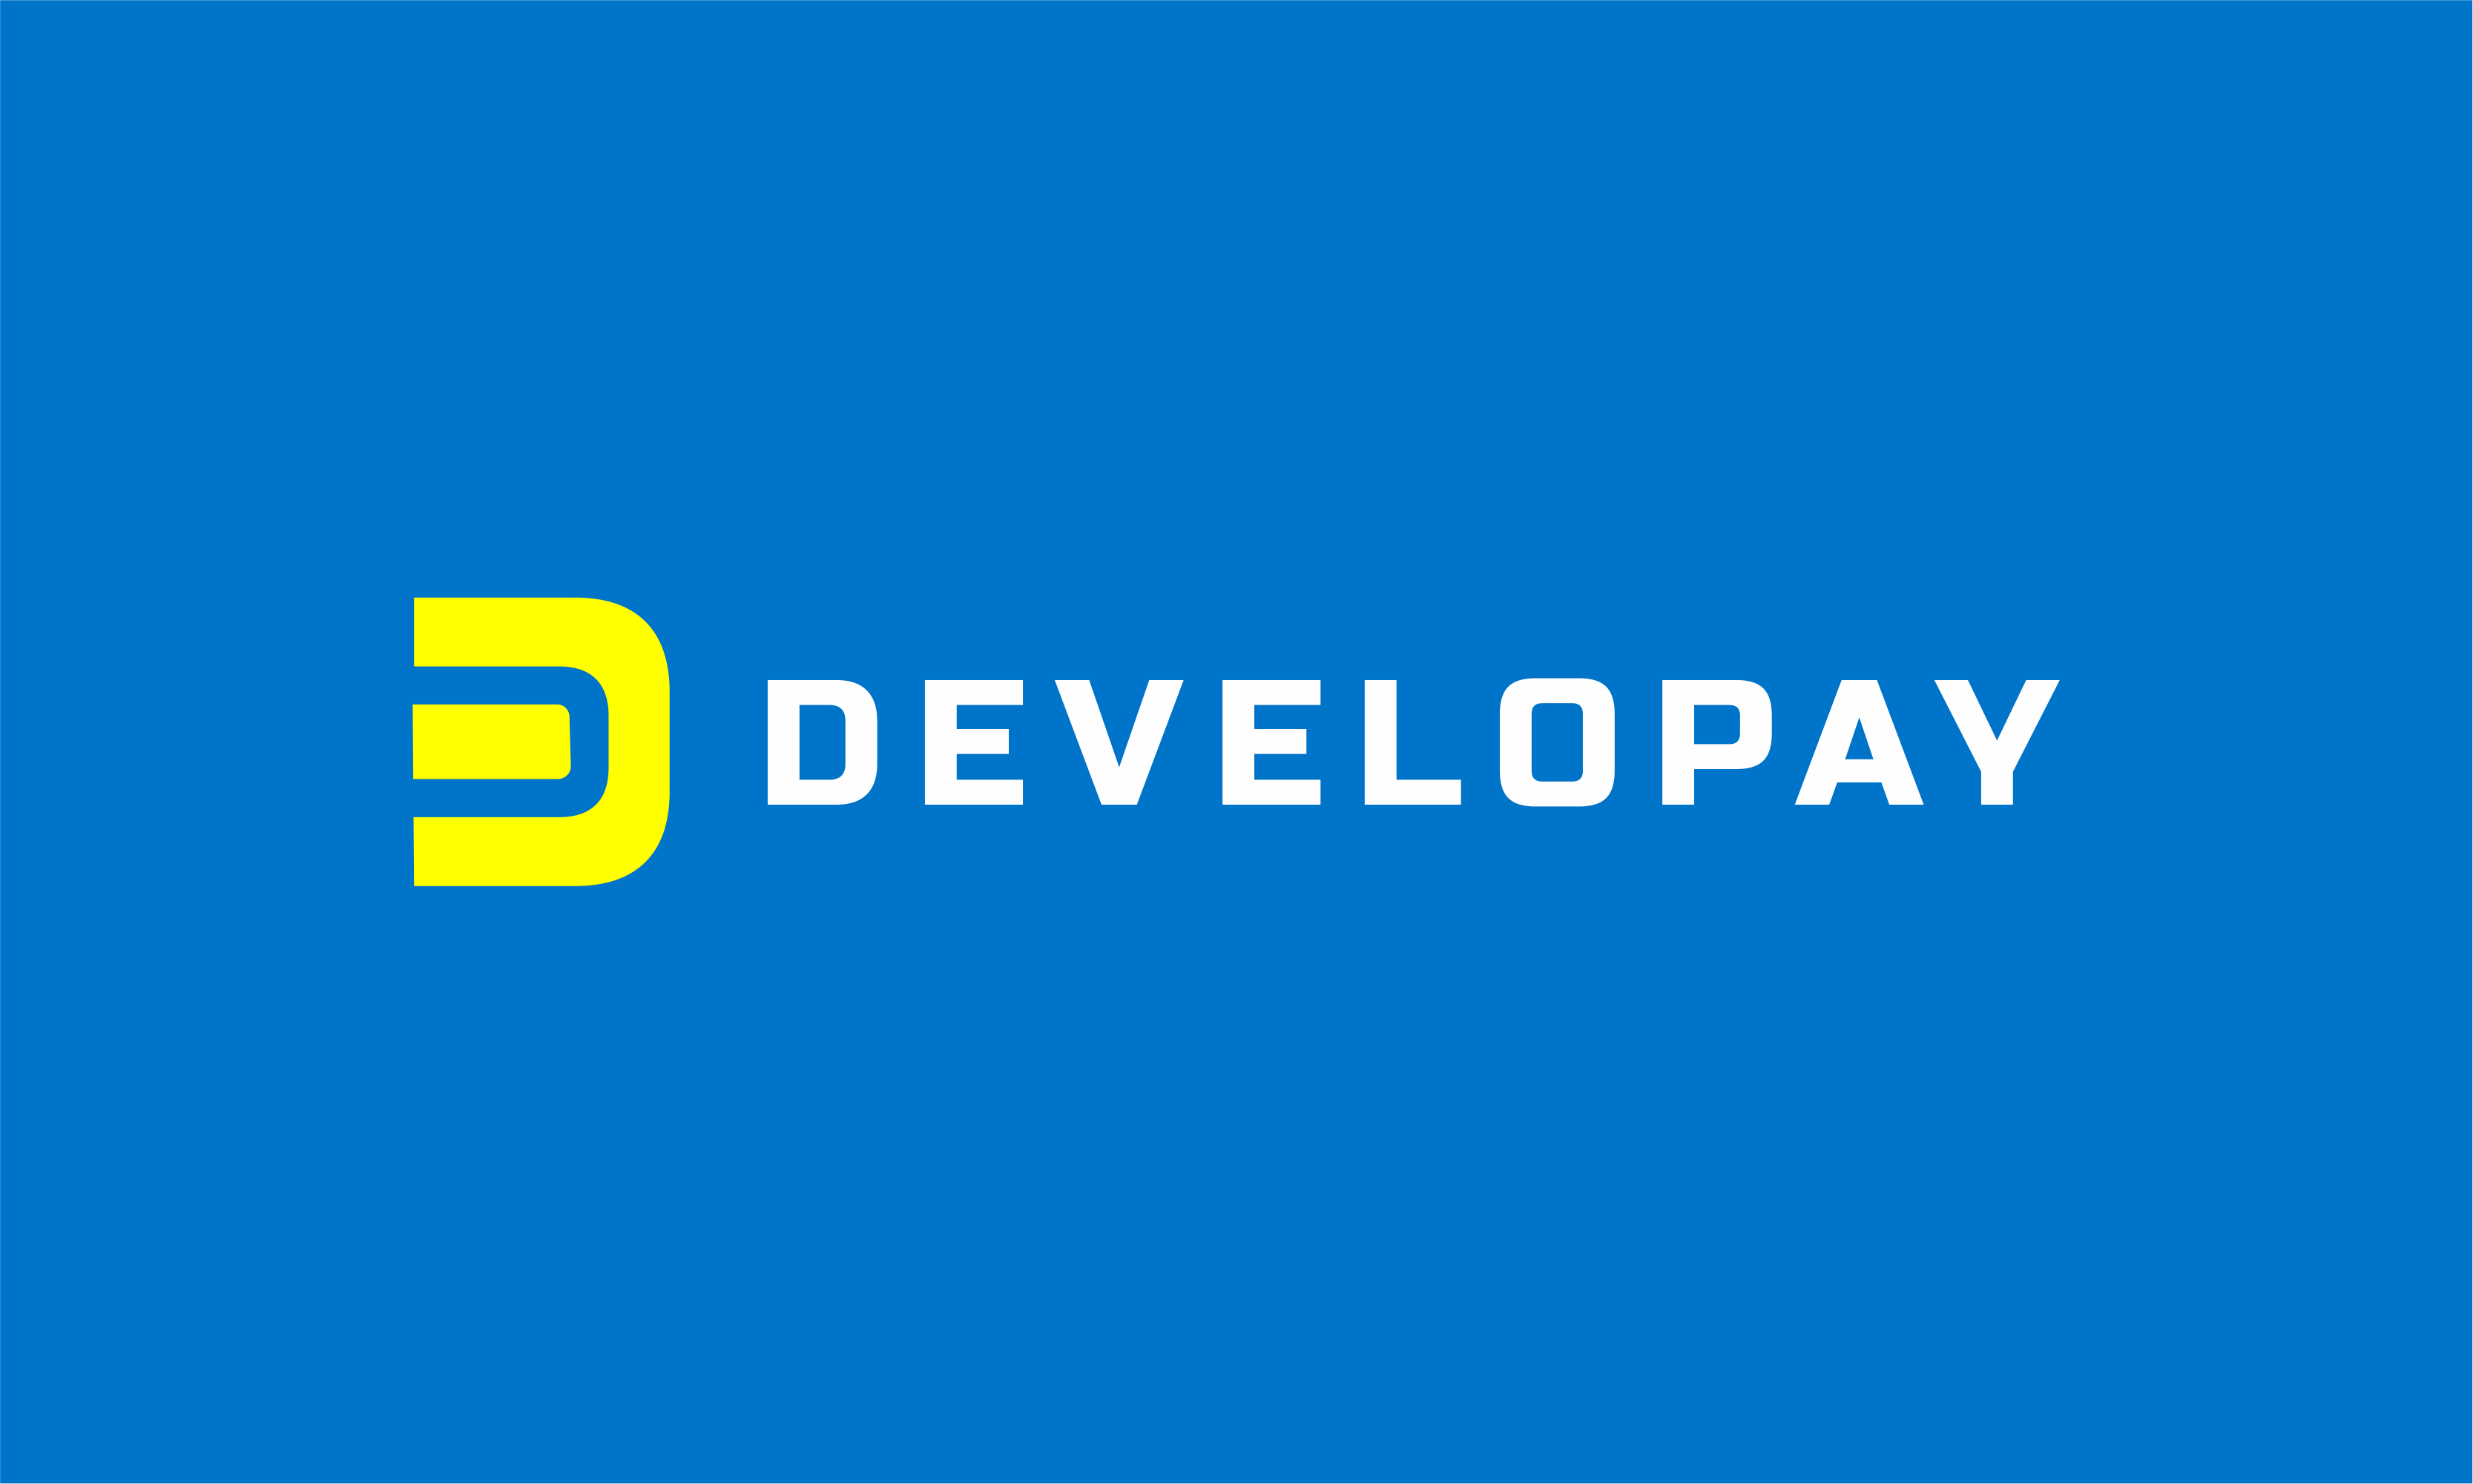 developay